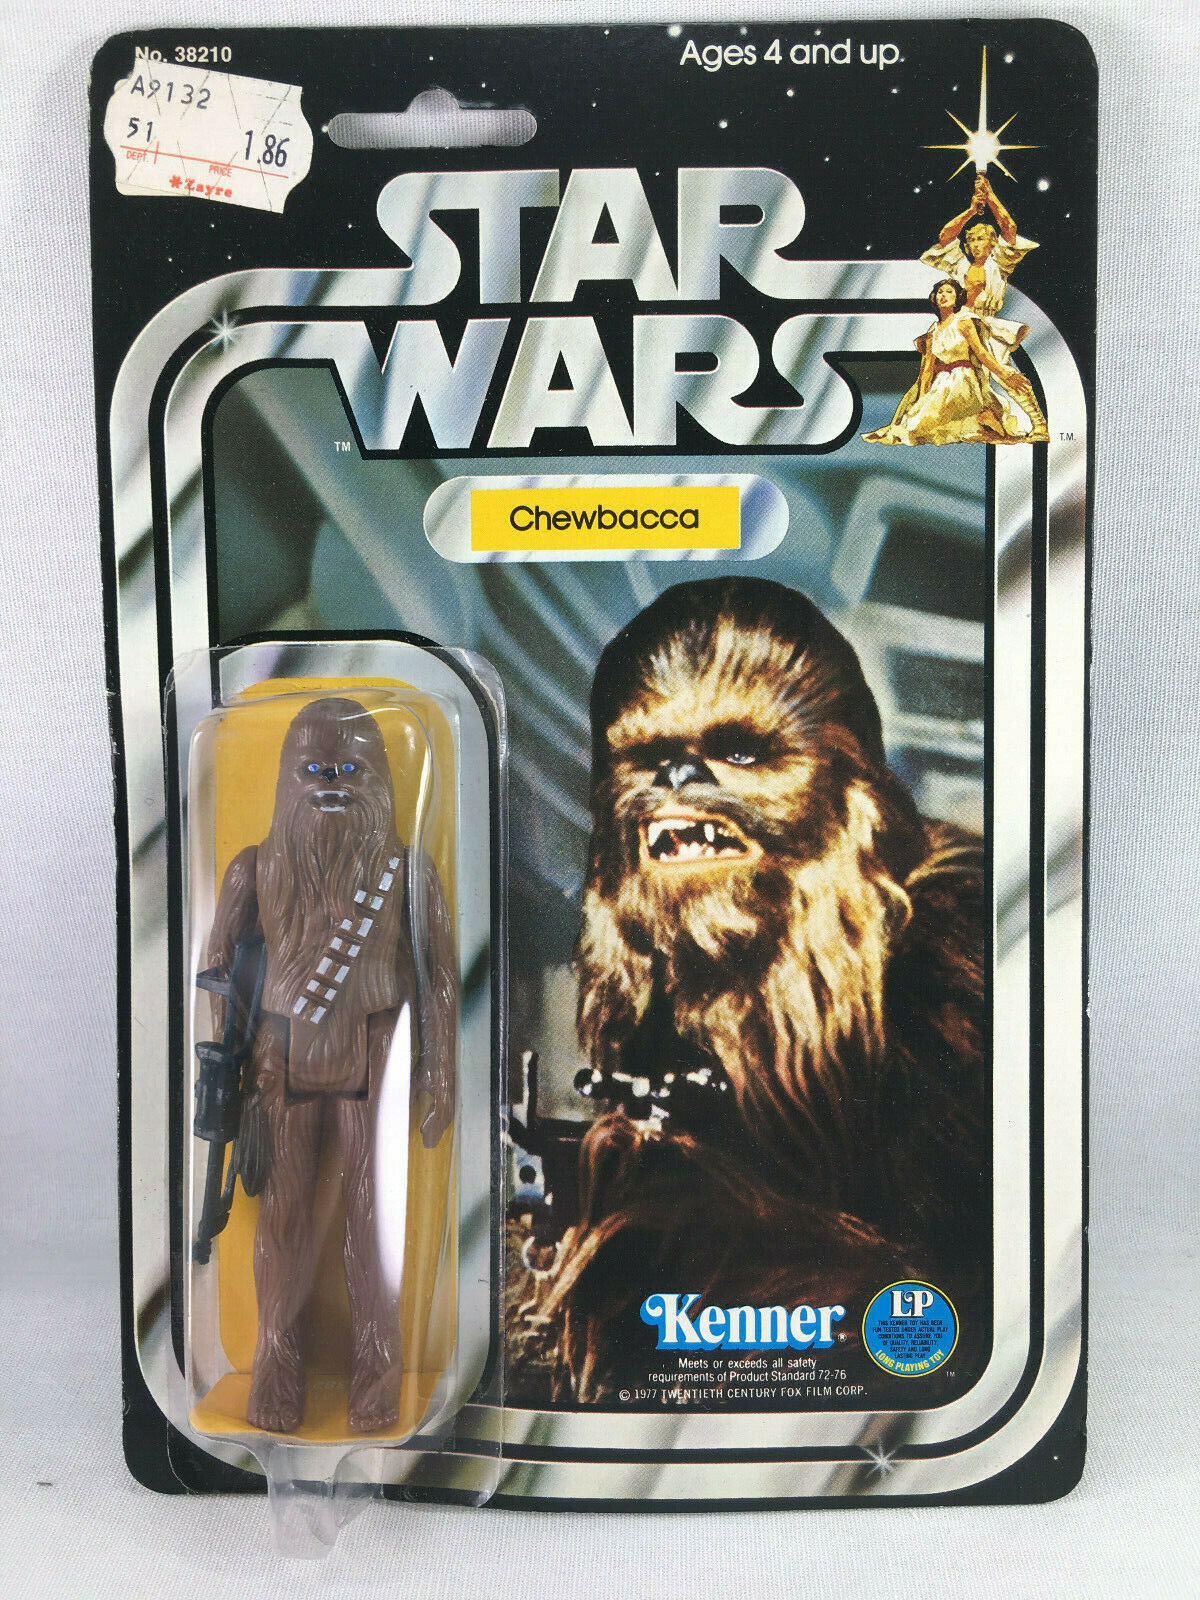 1977 KENNER Stern WARS CHEWBACCA FIGURE 12 BACK A SKU FOOTER MOC NEW